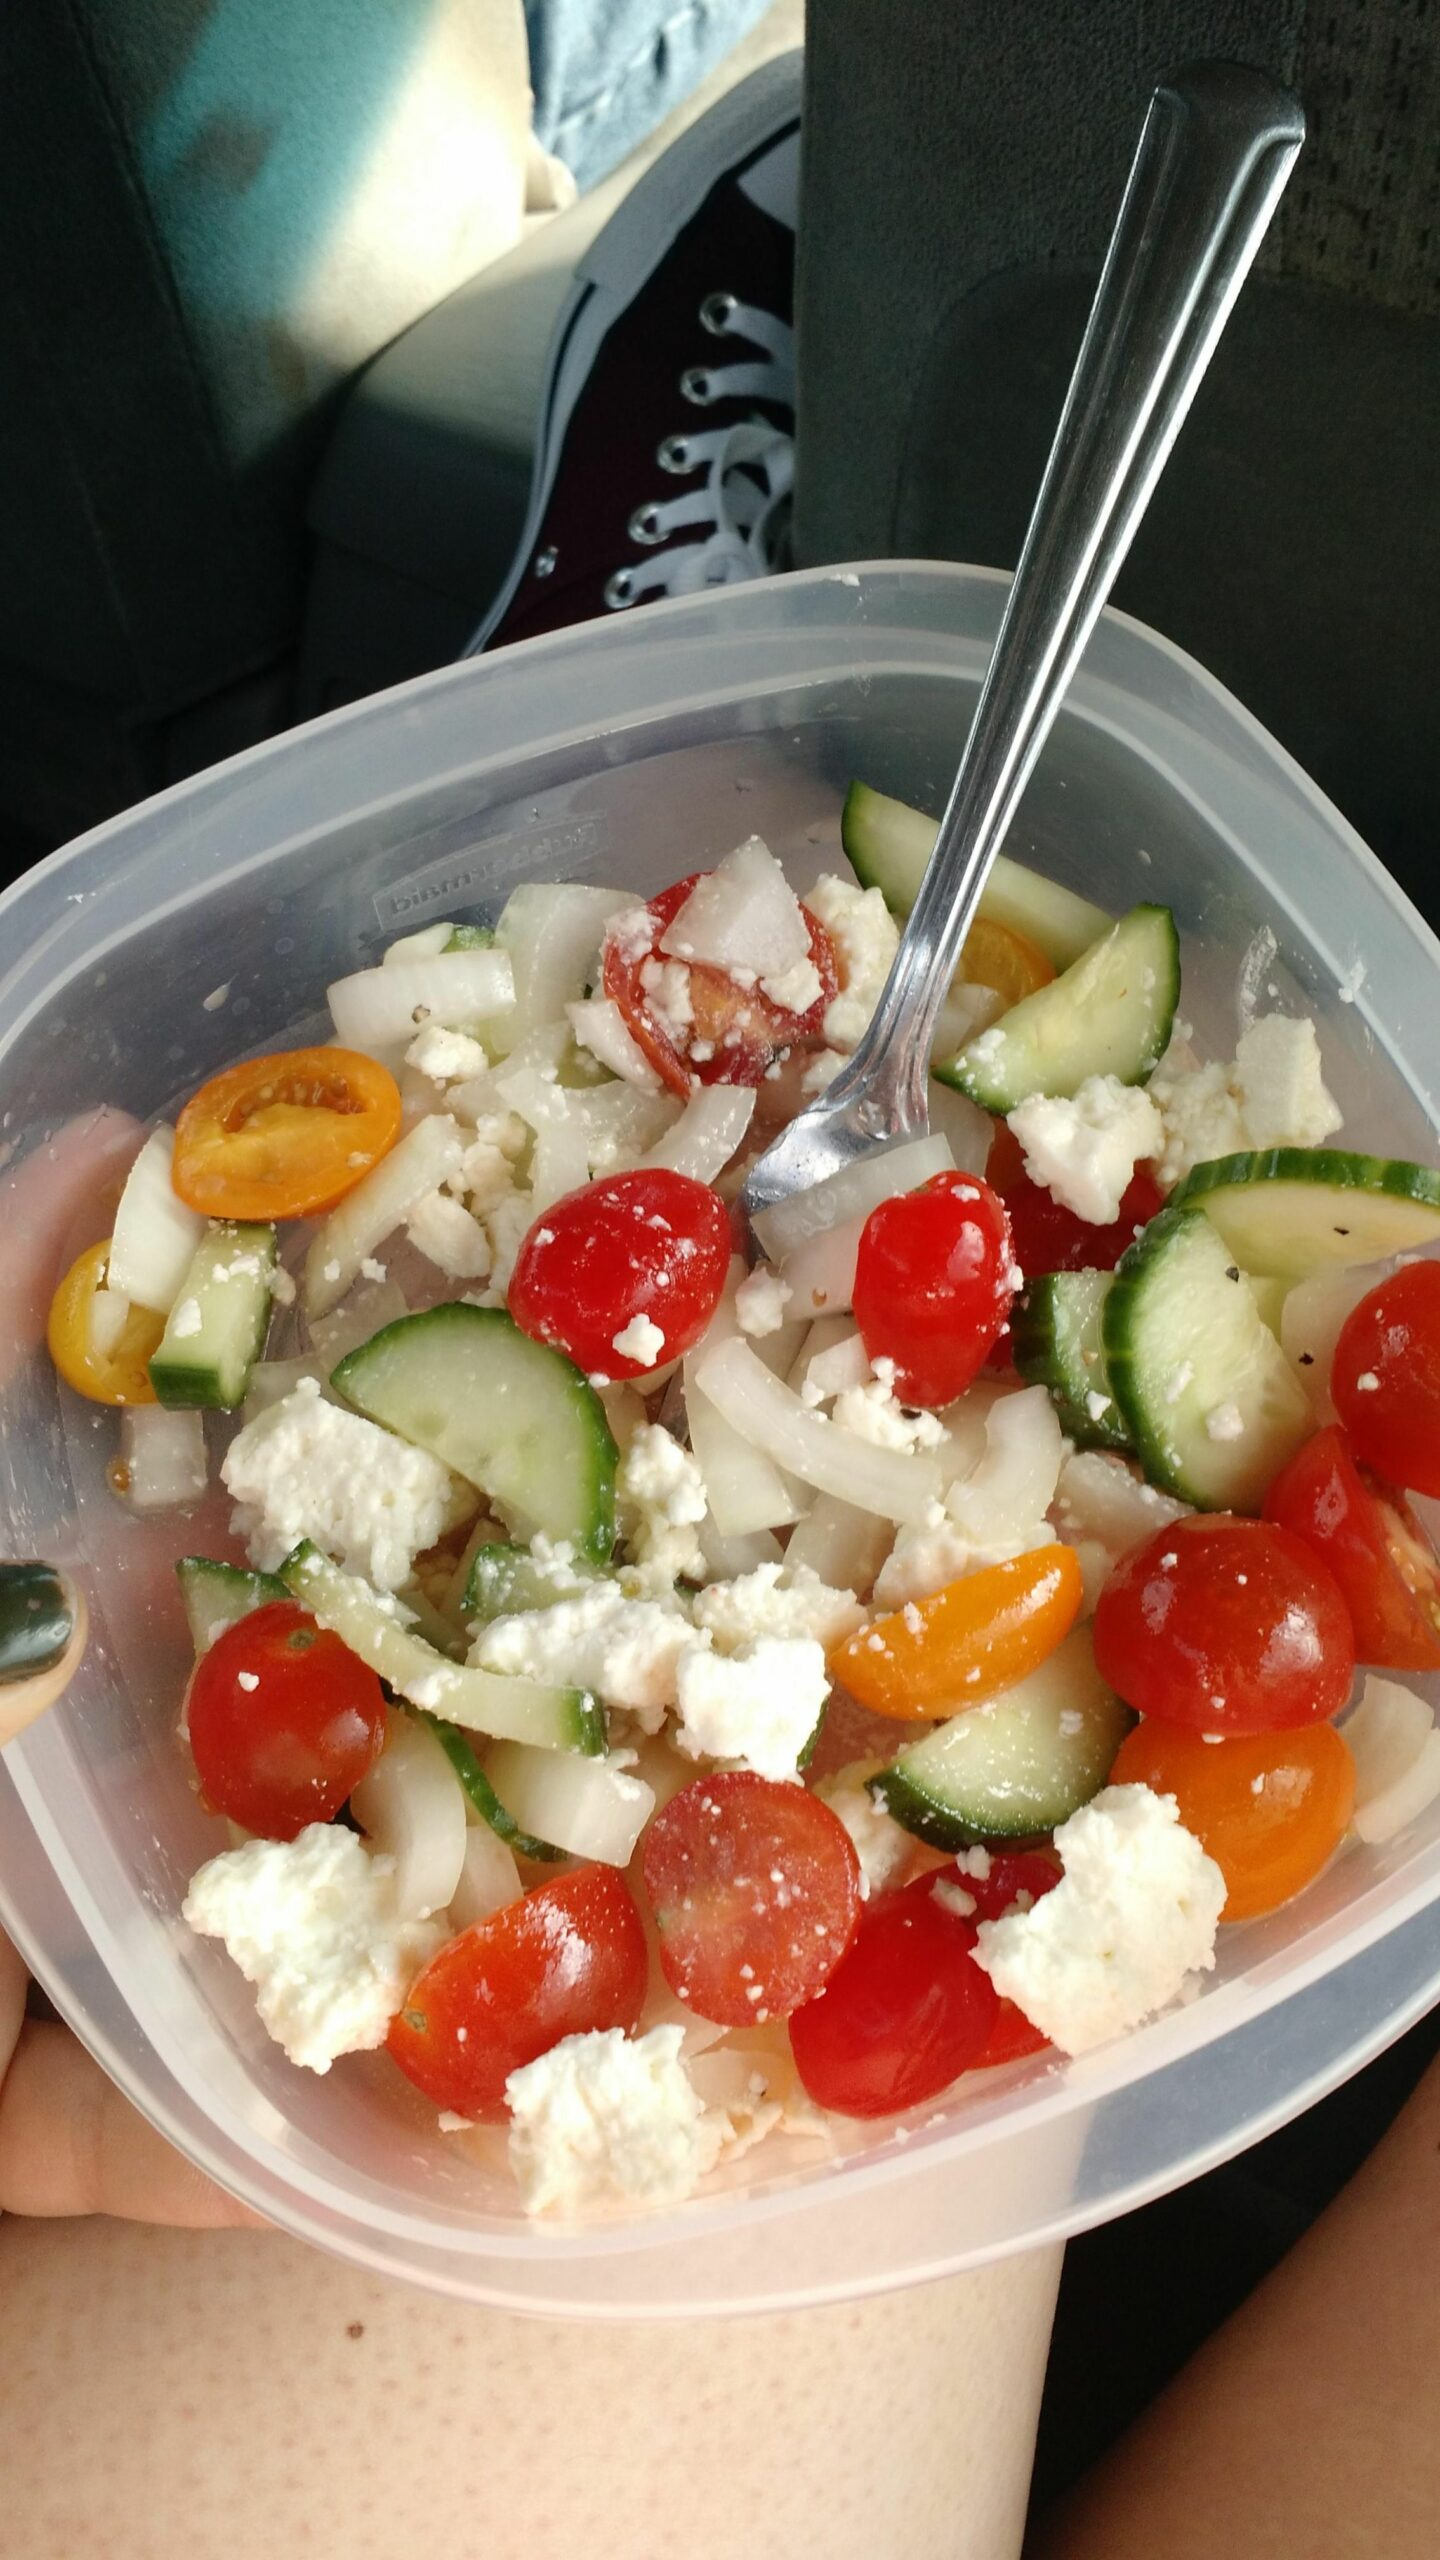 My go-to salad, under 11 calories! Most of that being the feta ..